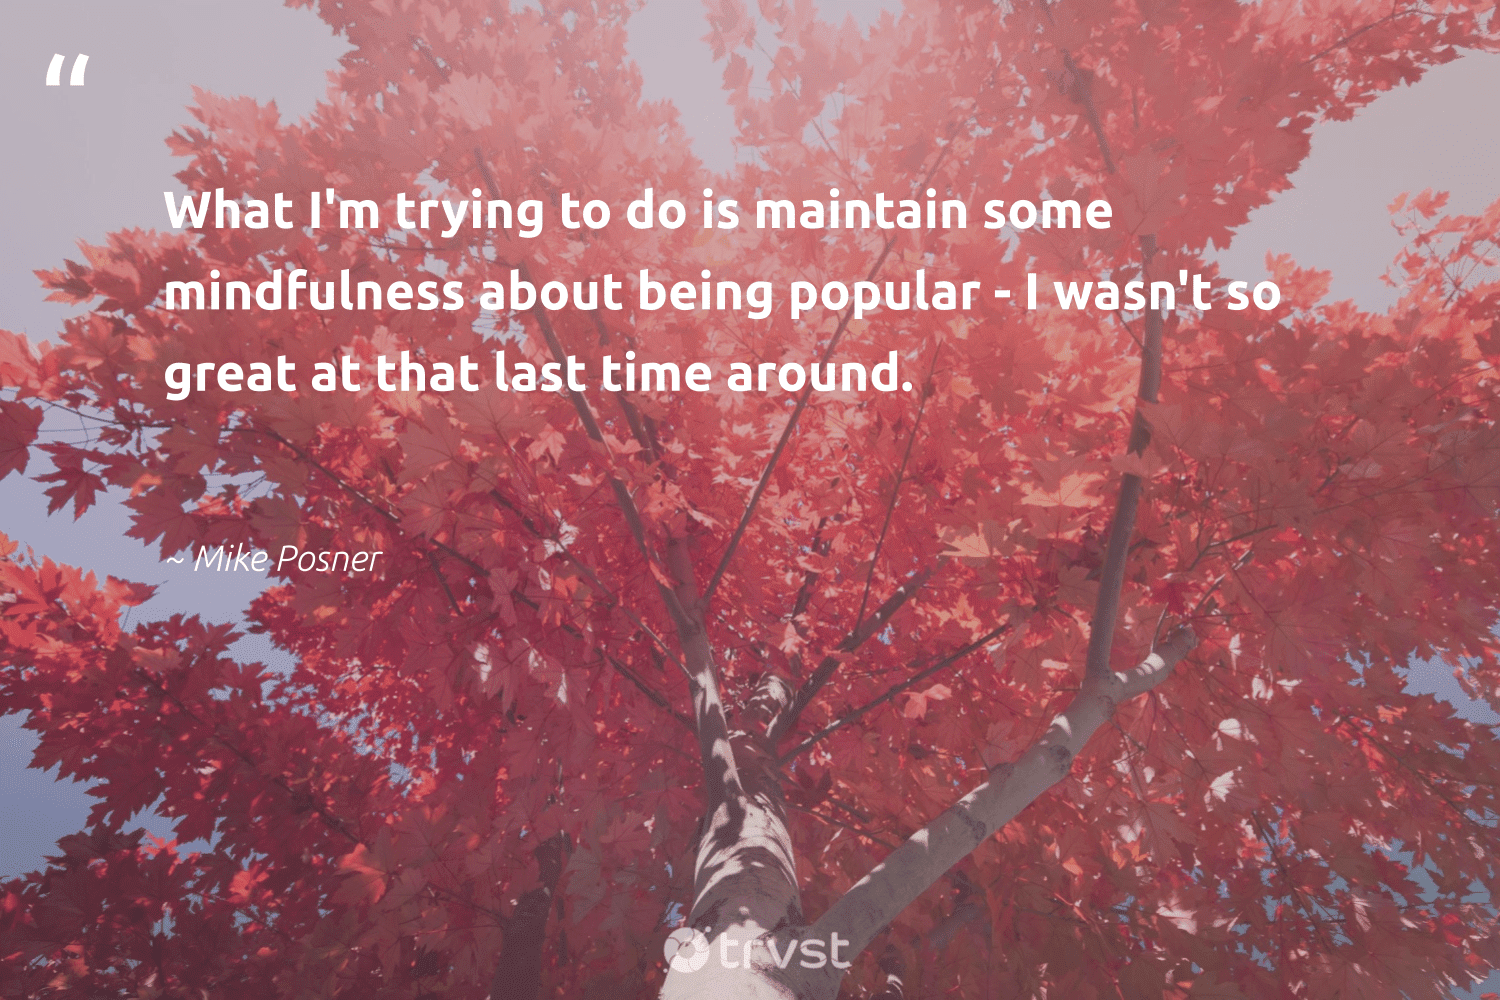 """""""What I'm trying to do is maintain some mindfulness about being popular - I wasn't so great at that last time around.""""  - Mike Posner #trvst #quotes #mindfulness #motivation #positivity #health #takeaction #goals #wellness #mindset #dotherightthing #meditate"""